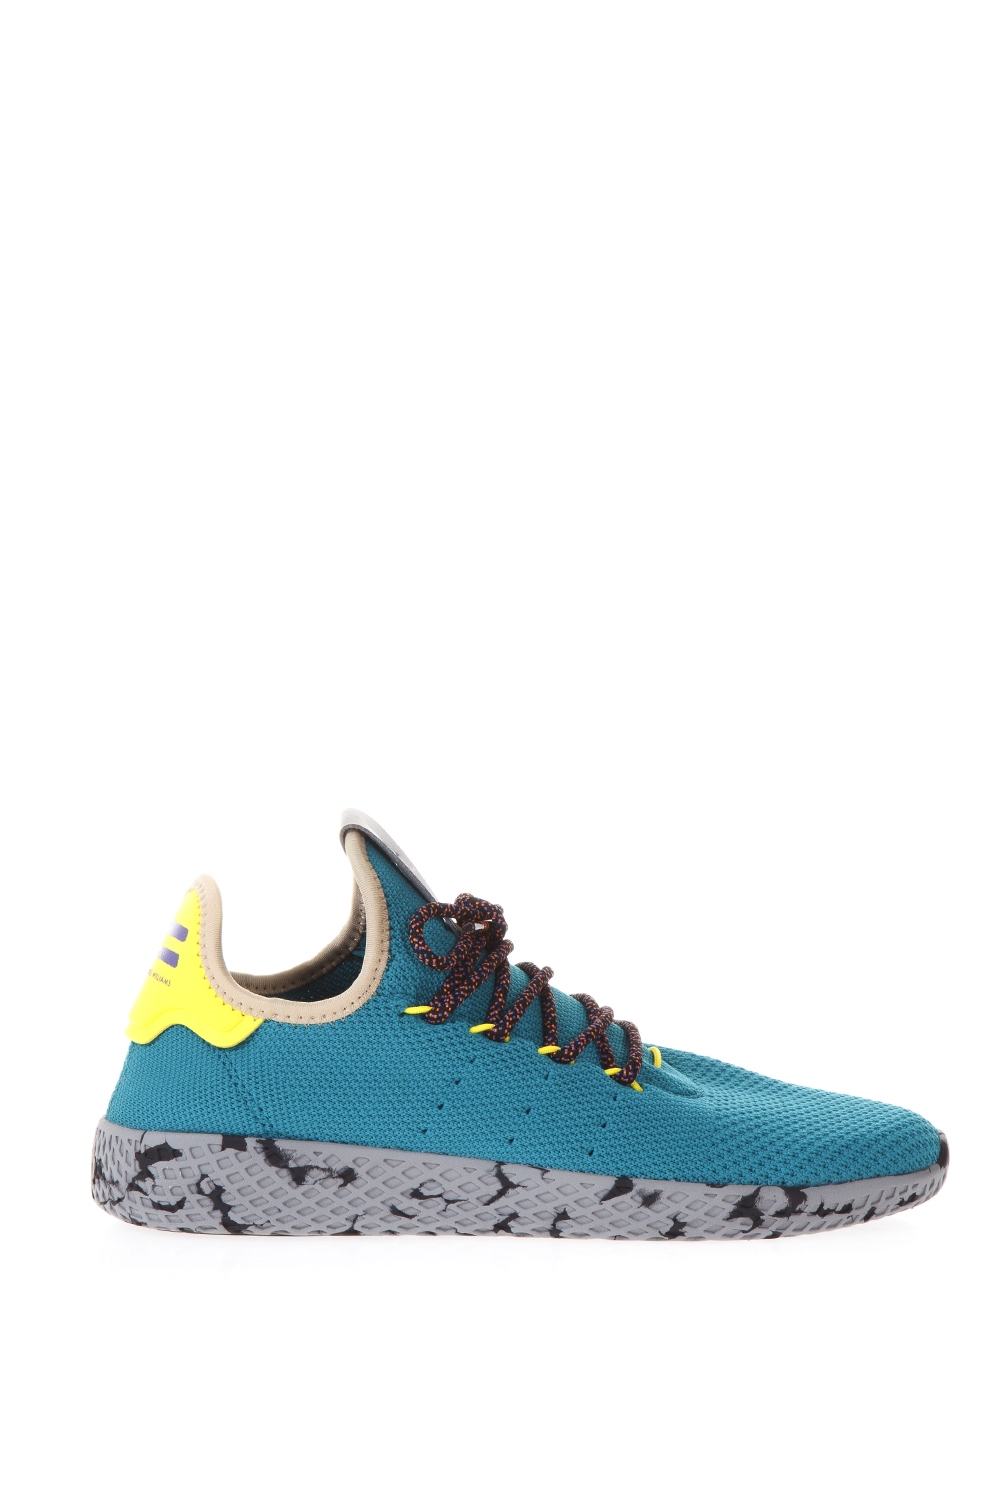 ed190ddce4546 TENNIS HU PRIMEKNIT SHOES ss 2017 - ADIDAS   PHARRELL WILLIAMS - Boutique  Galiano